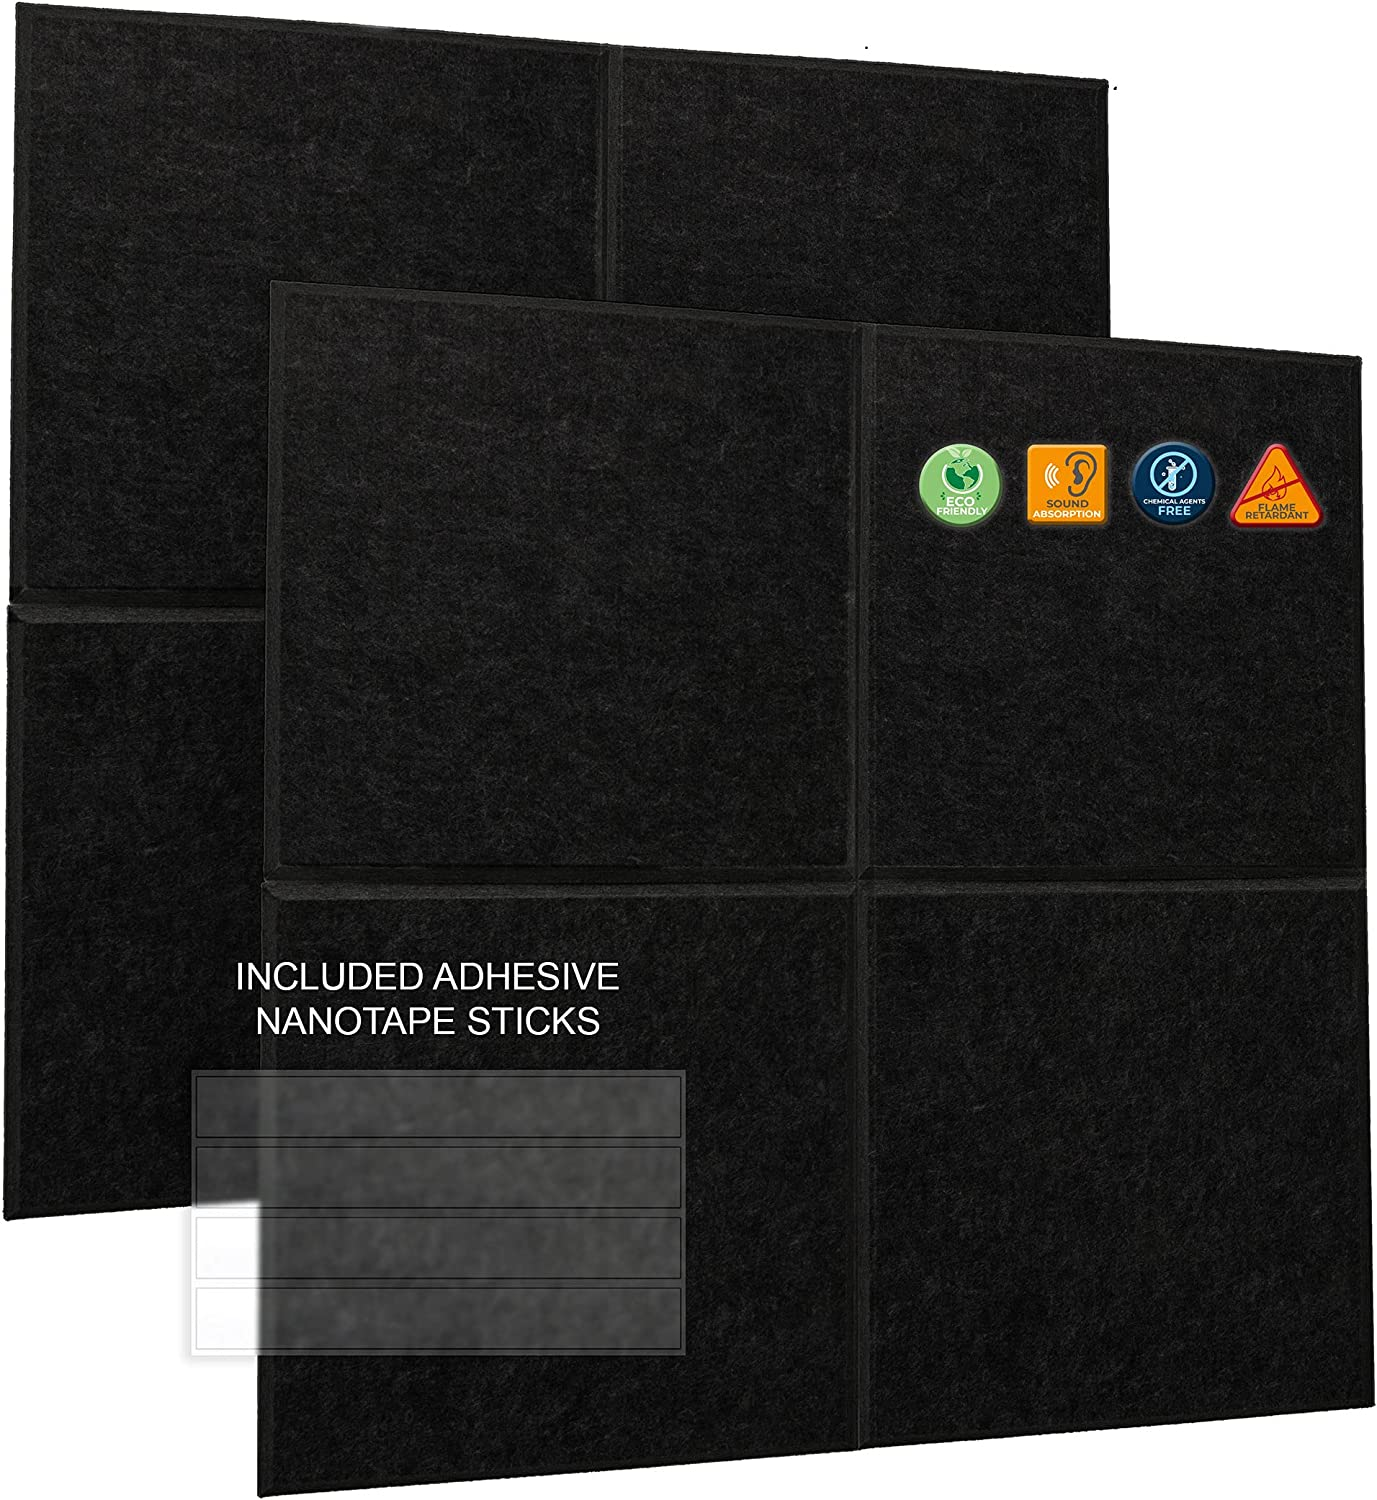 A2S Acoustic Panels Sound Proof - 8 Pack Decorative Wall Panels 12